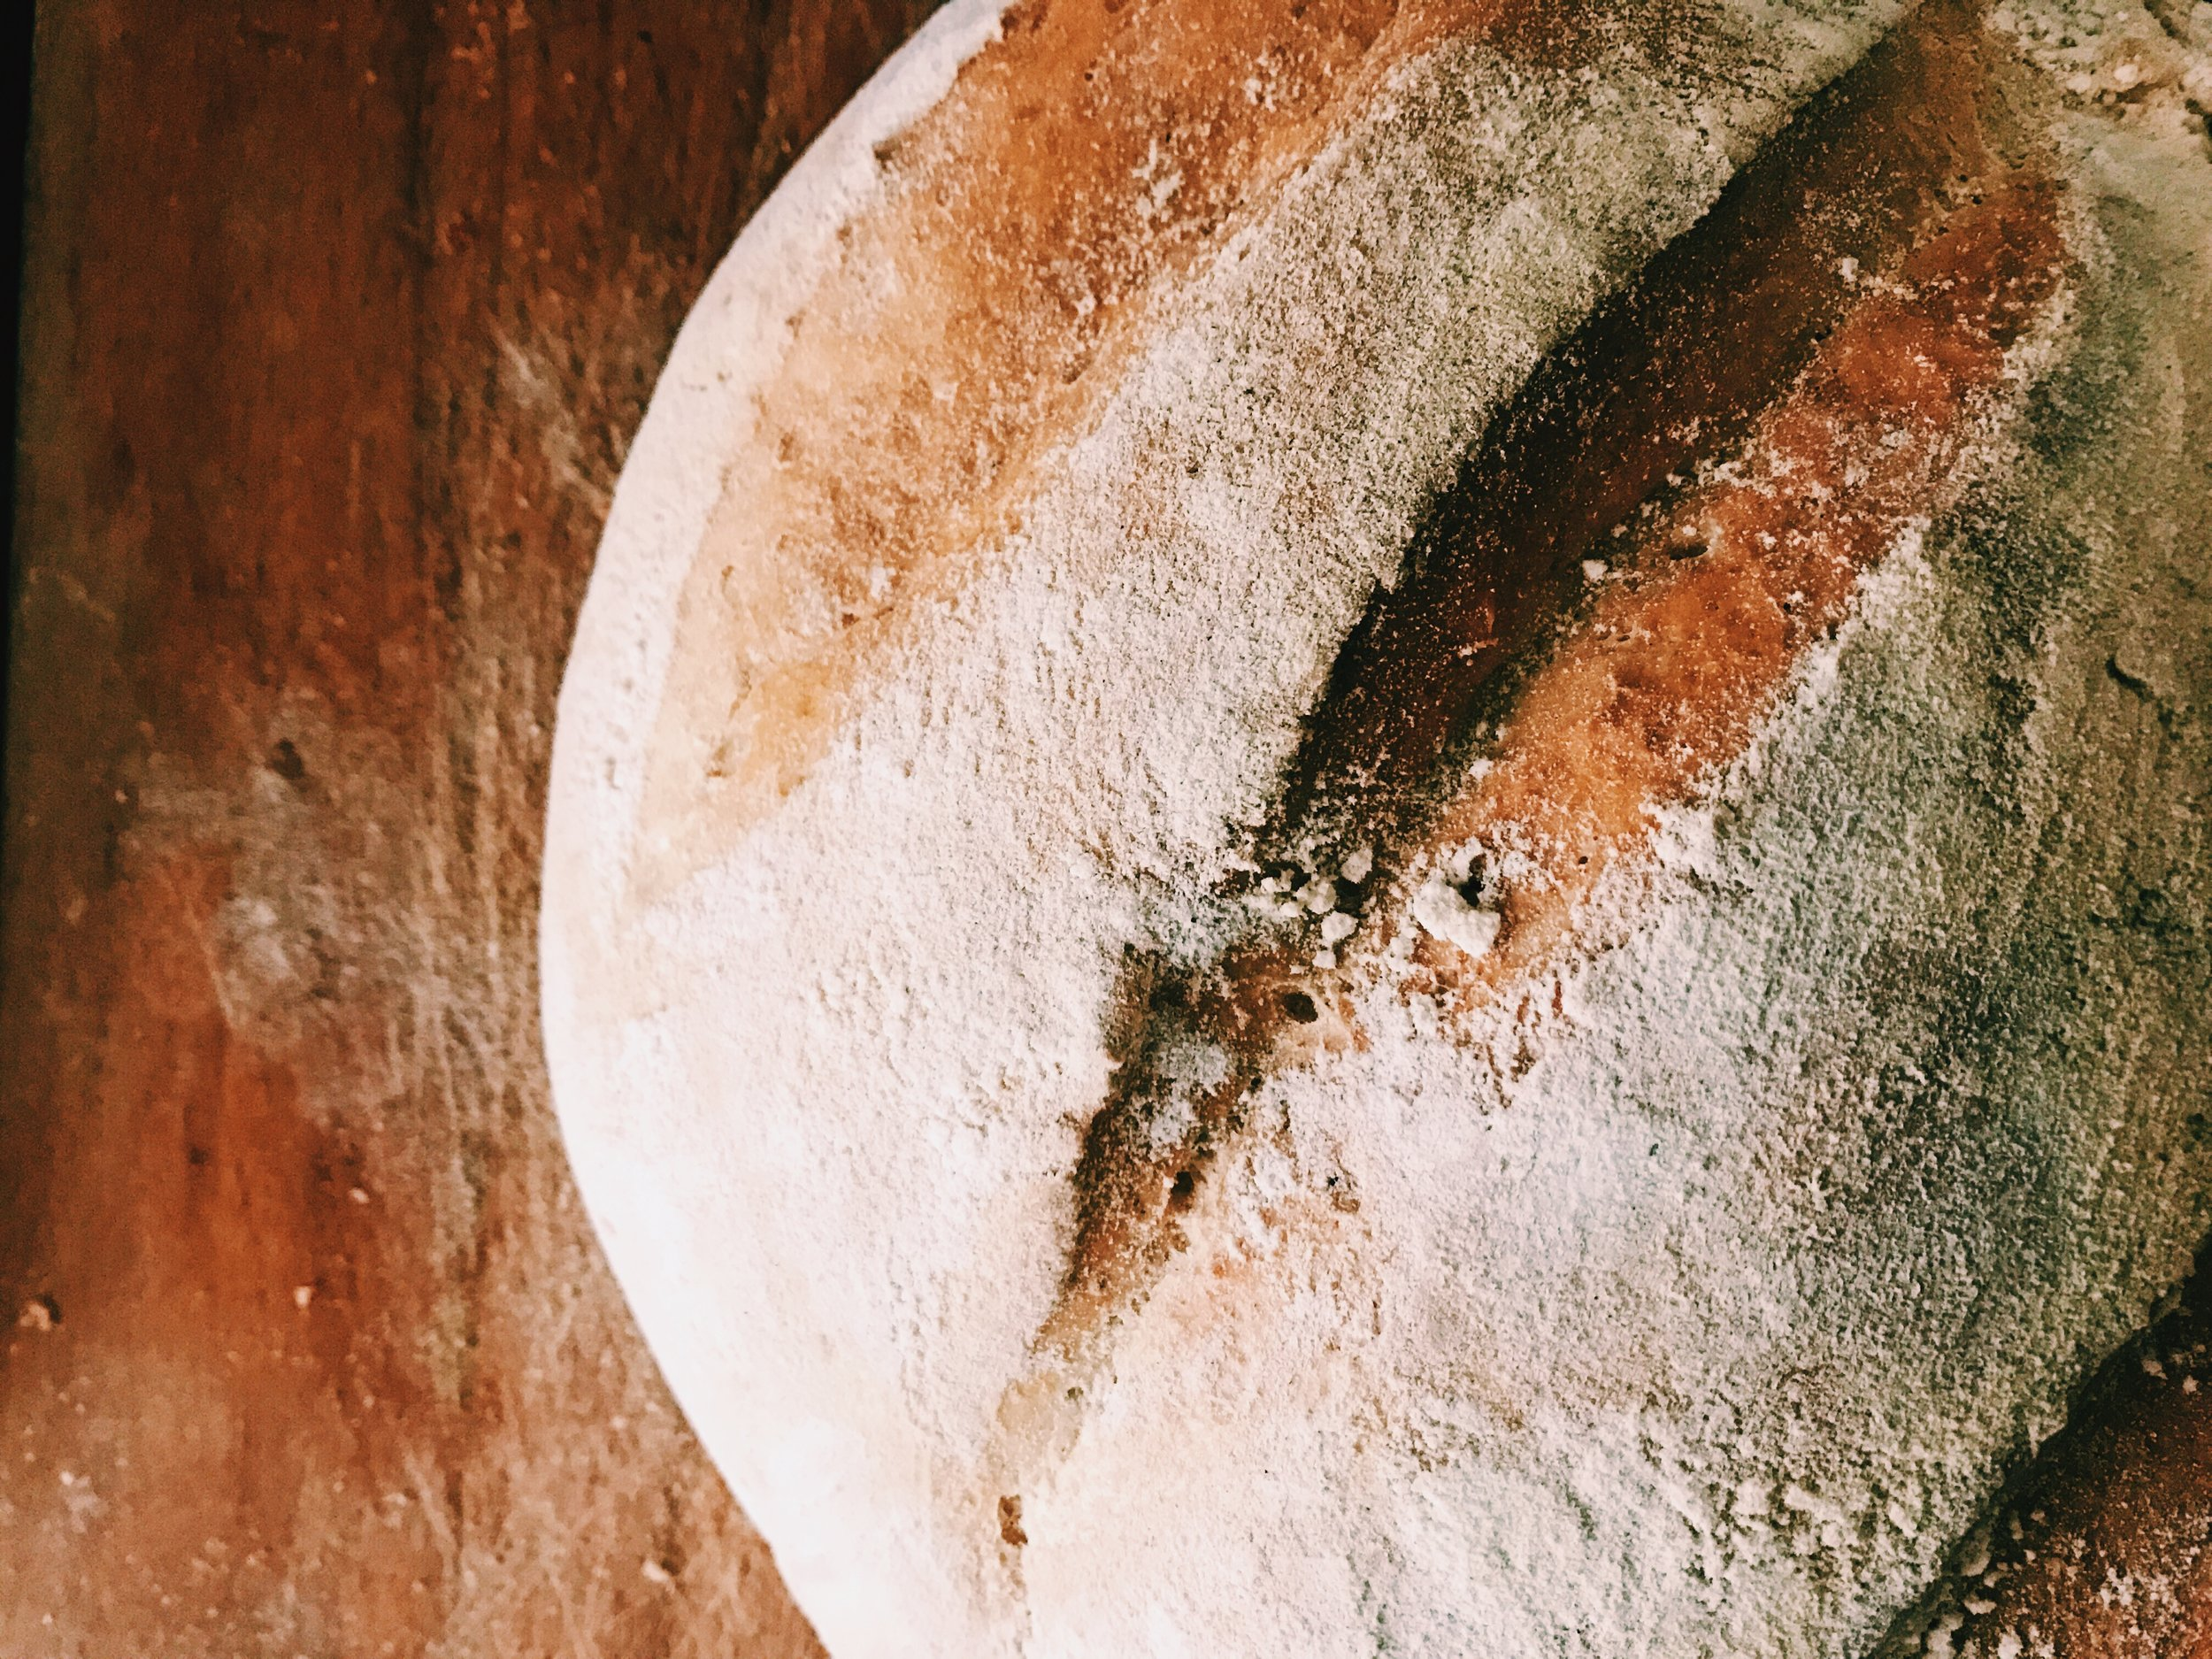 Series: What Jesus Says About Himself - Part 1: I am the Bread of LifeText: John 6:22-59